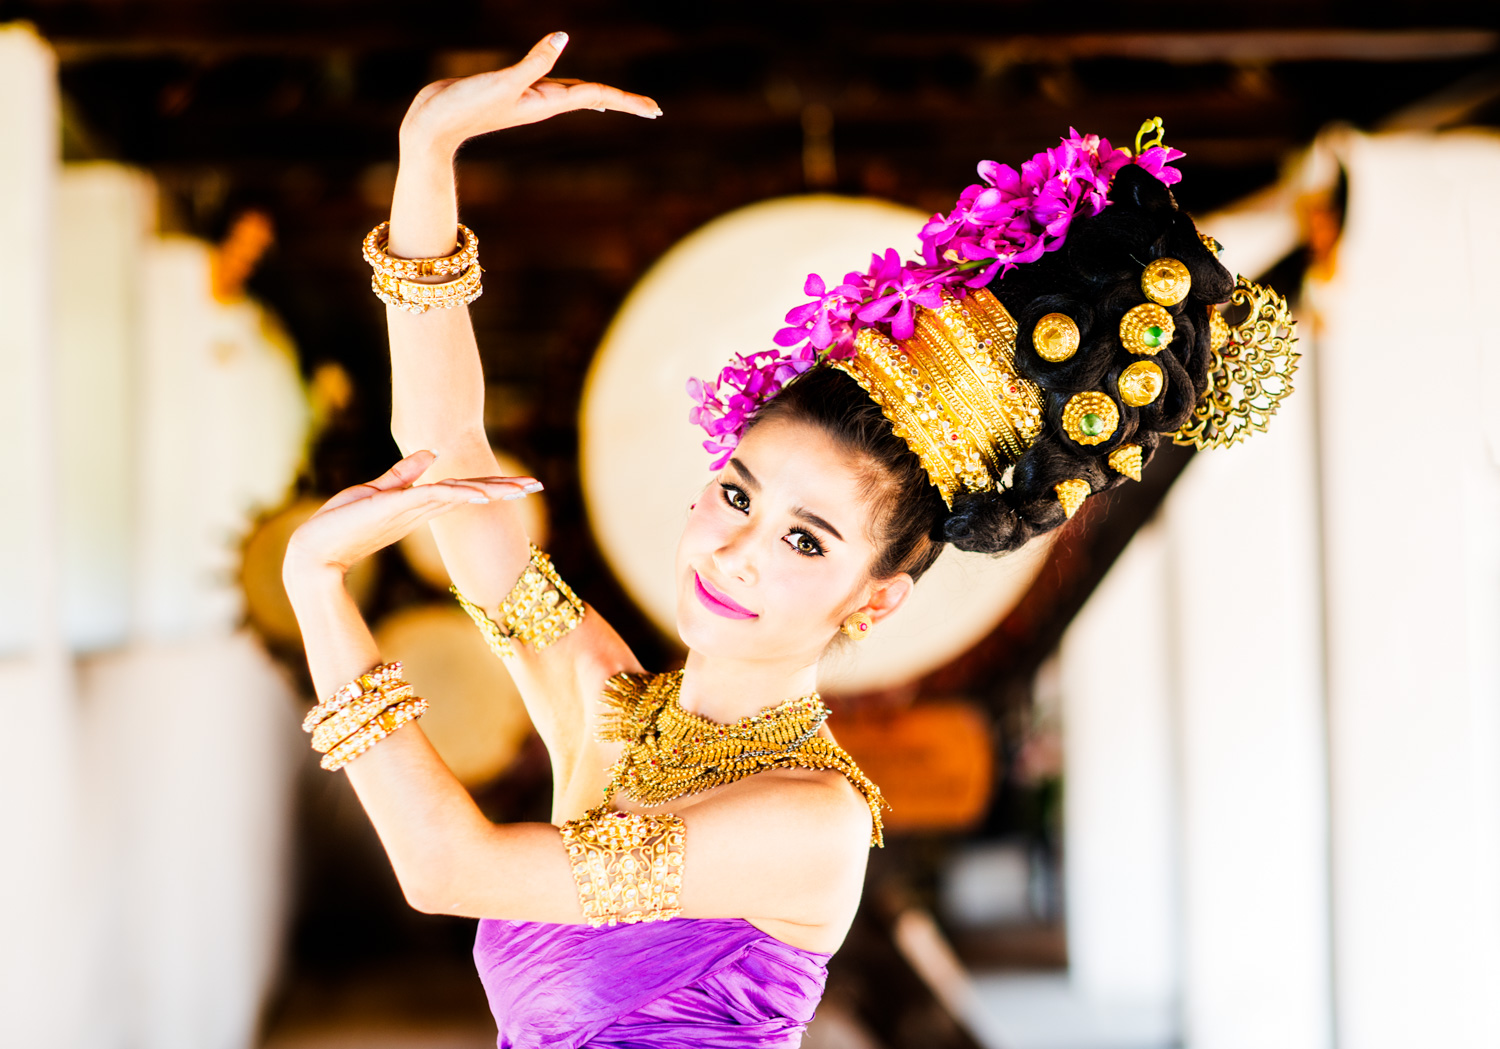 Thai dancer for frame within a frame photography